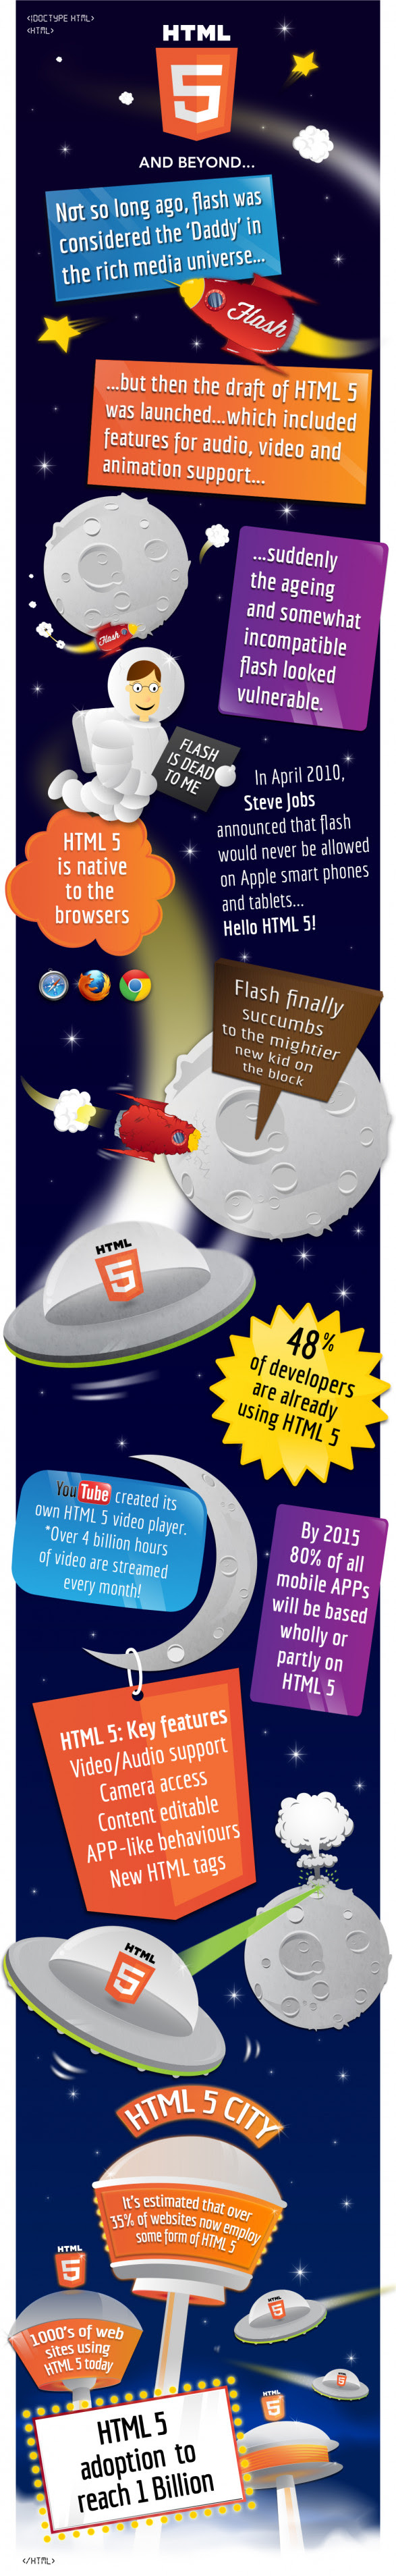 An HTML5 infographic, animated with HTML5 � a world first?